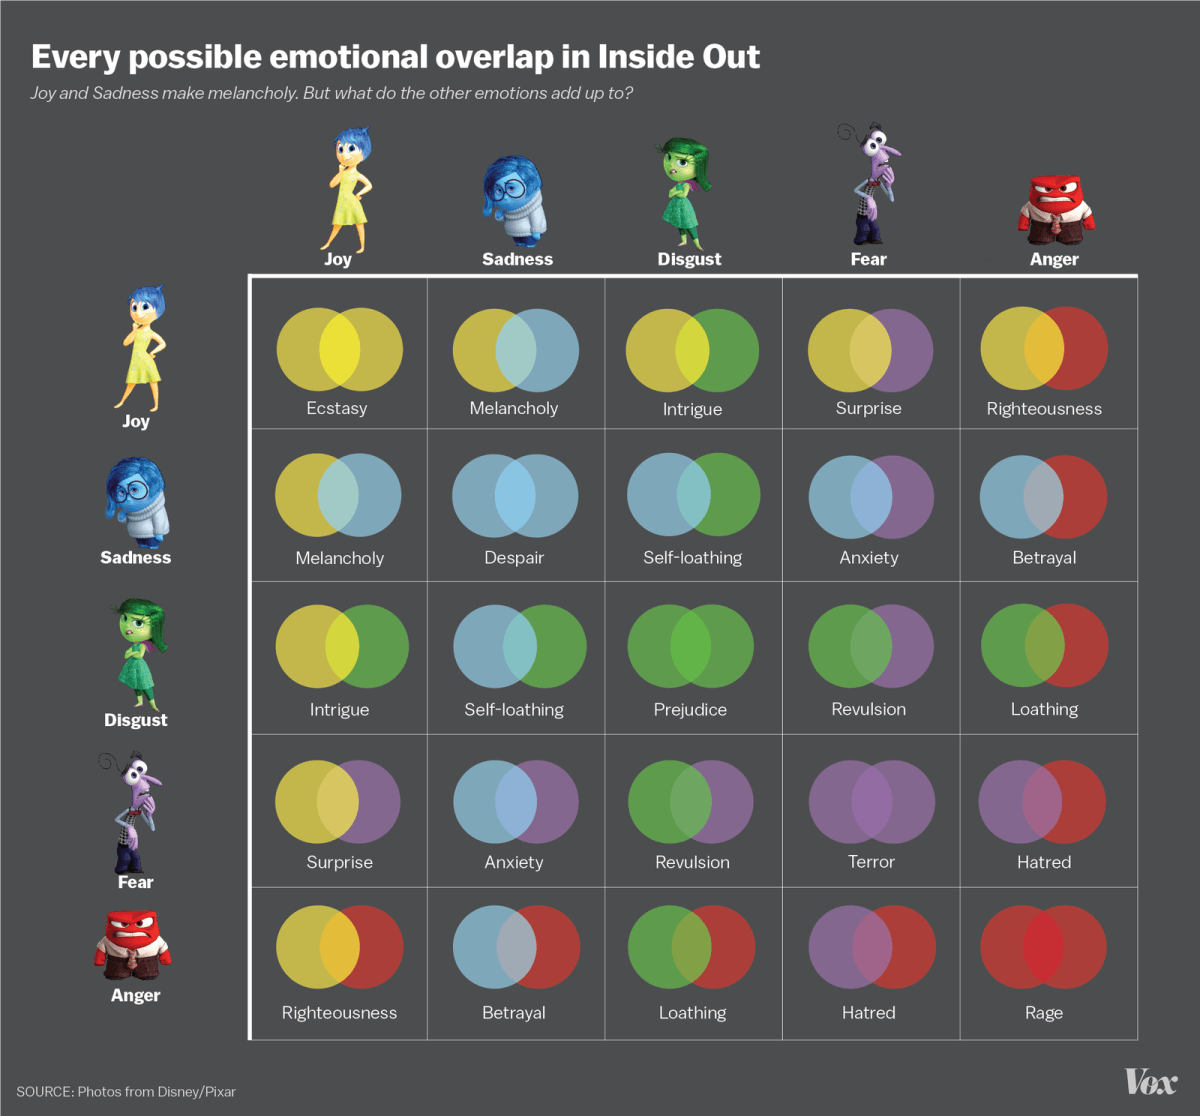 posibles superposicion emociones eninside out del reves